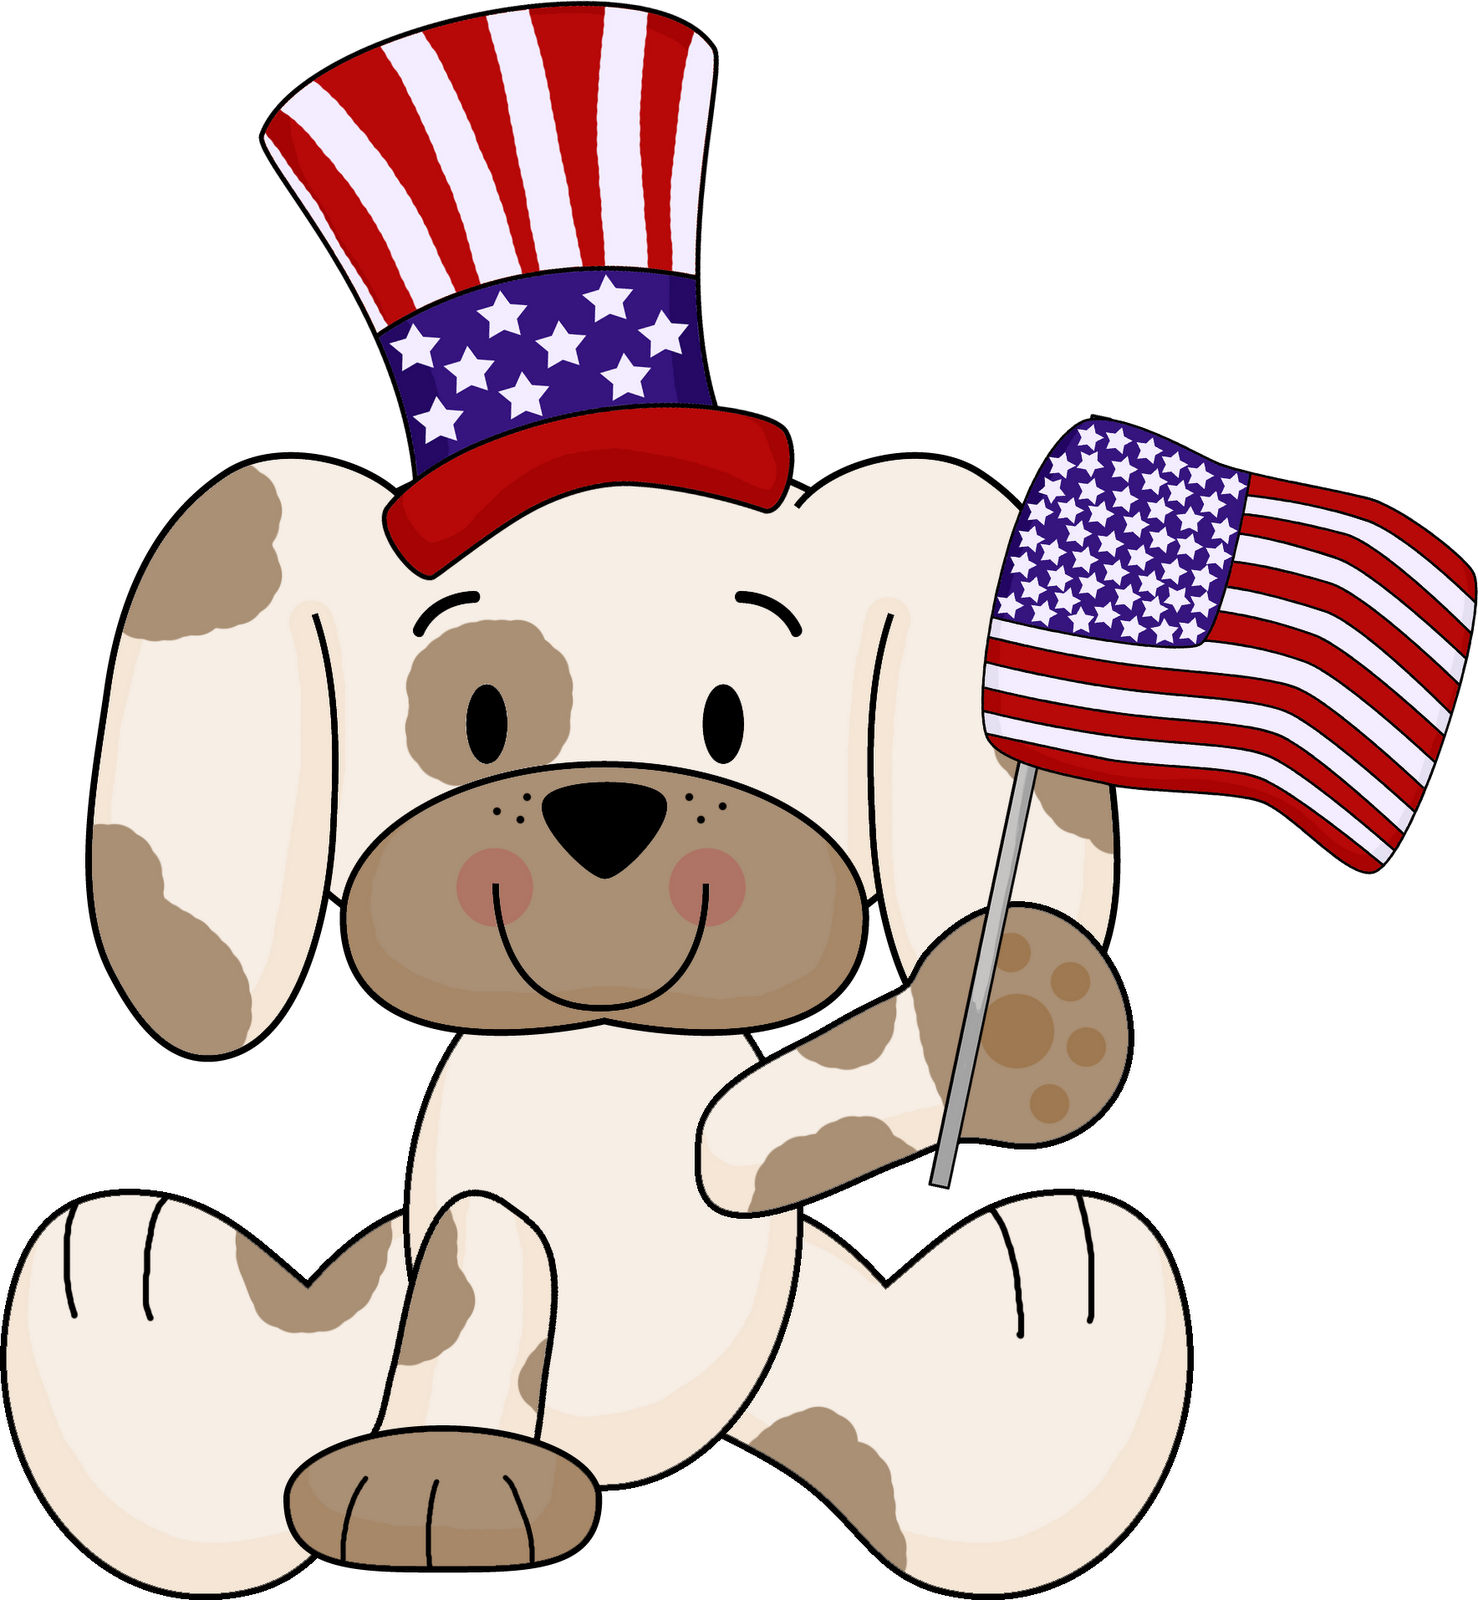 United states president chalk clipart vector library stock Free American Symbols Cliparts, Download Free Clip Art, Free Clip ... vector library stock